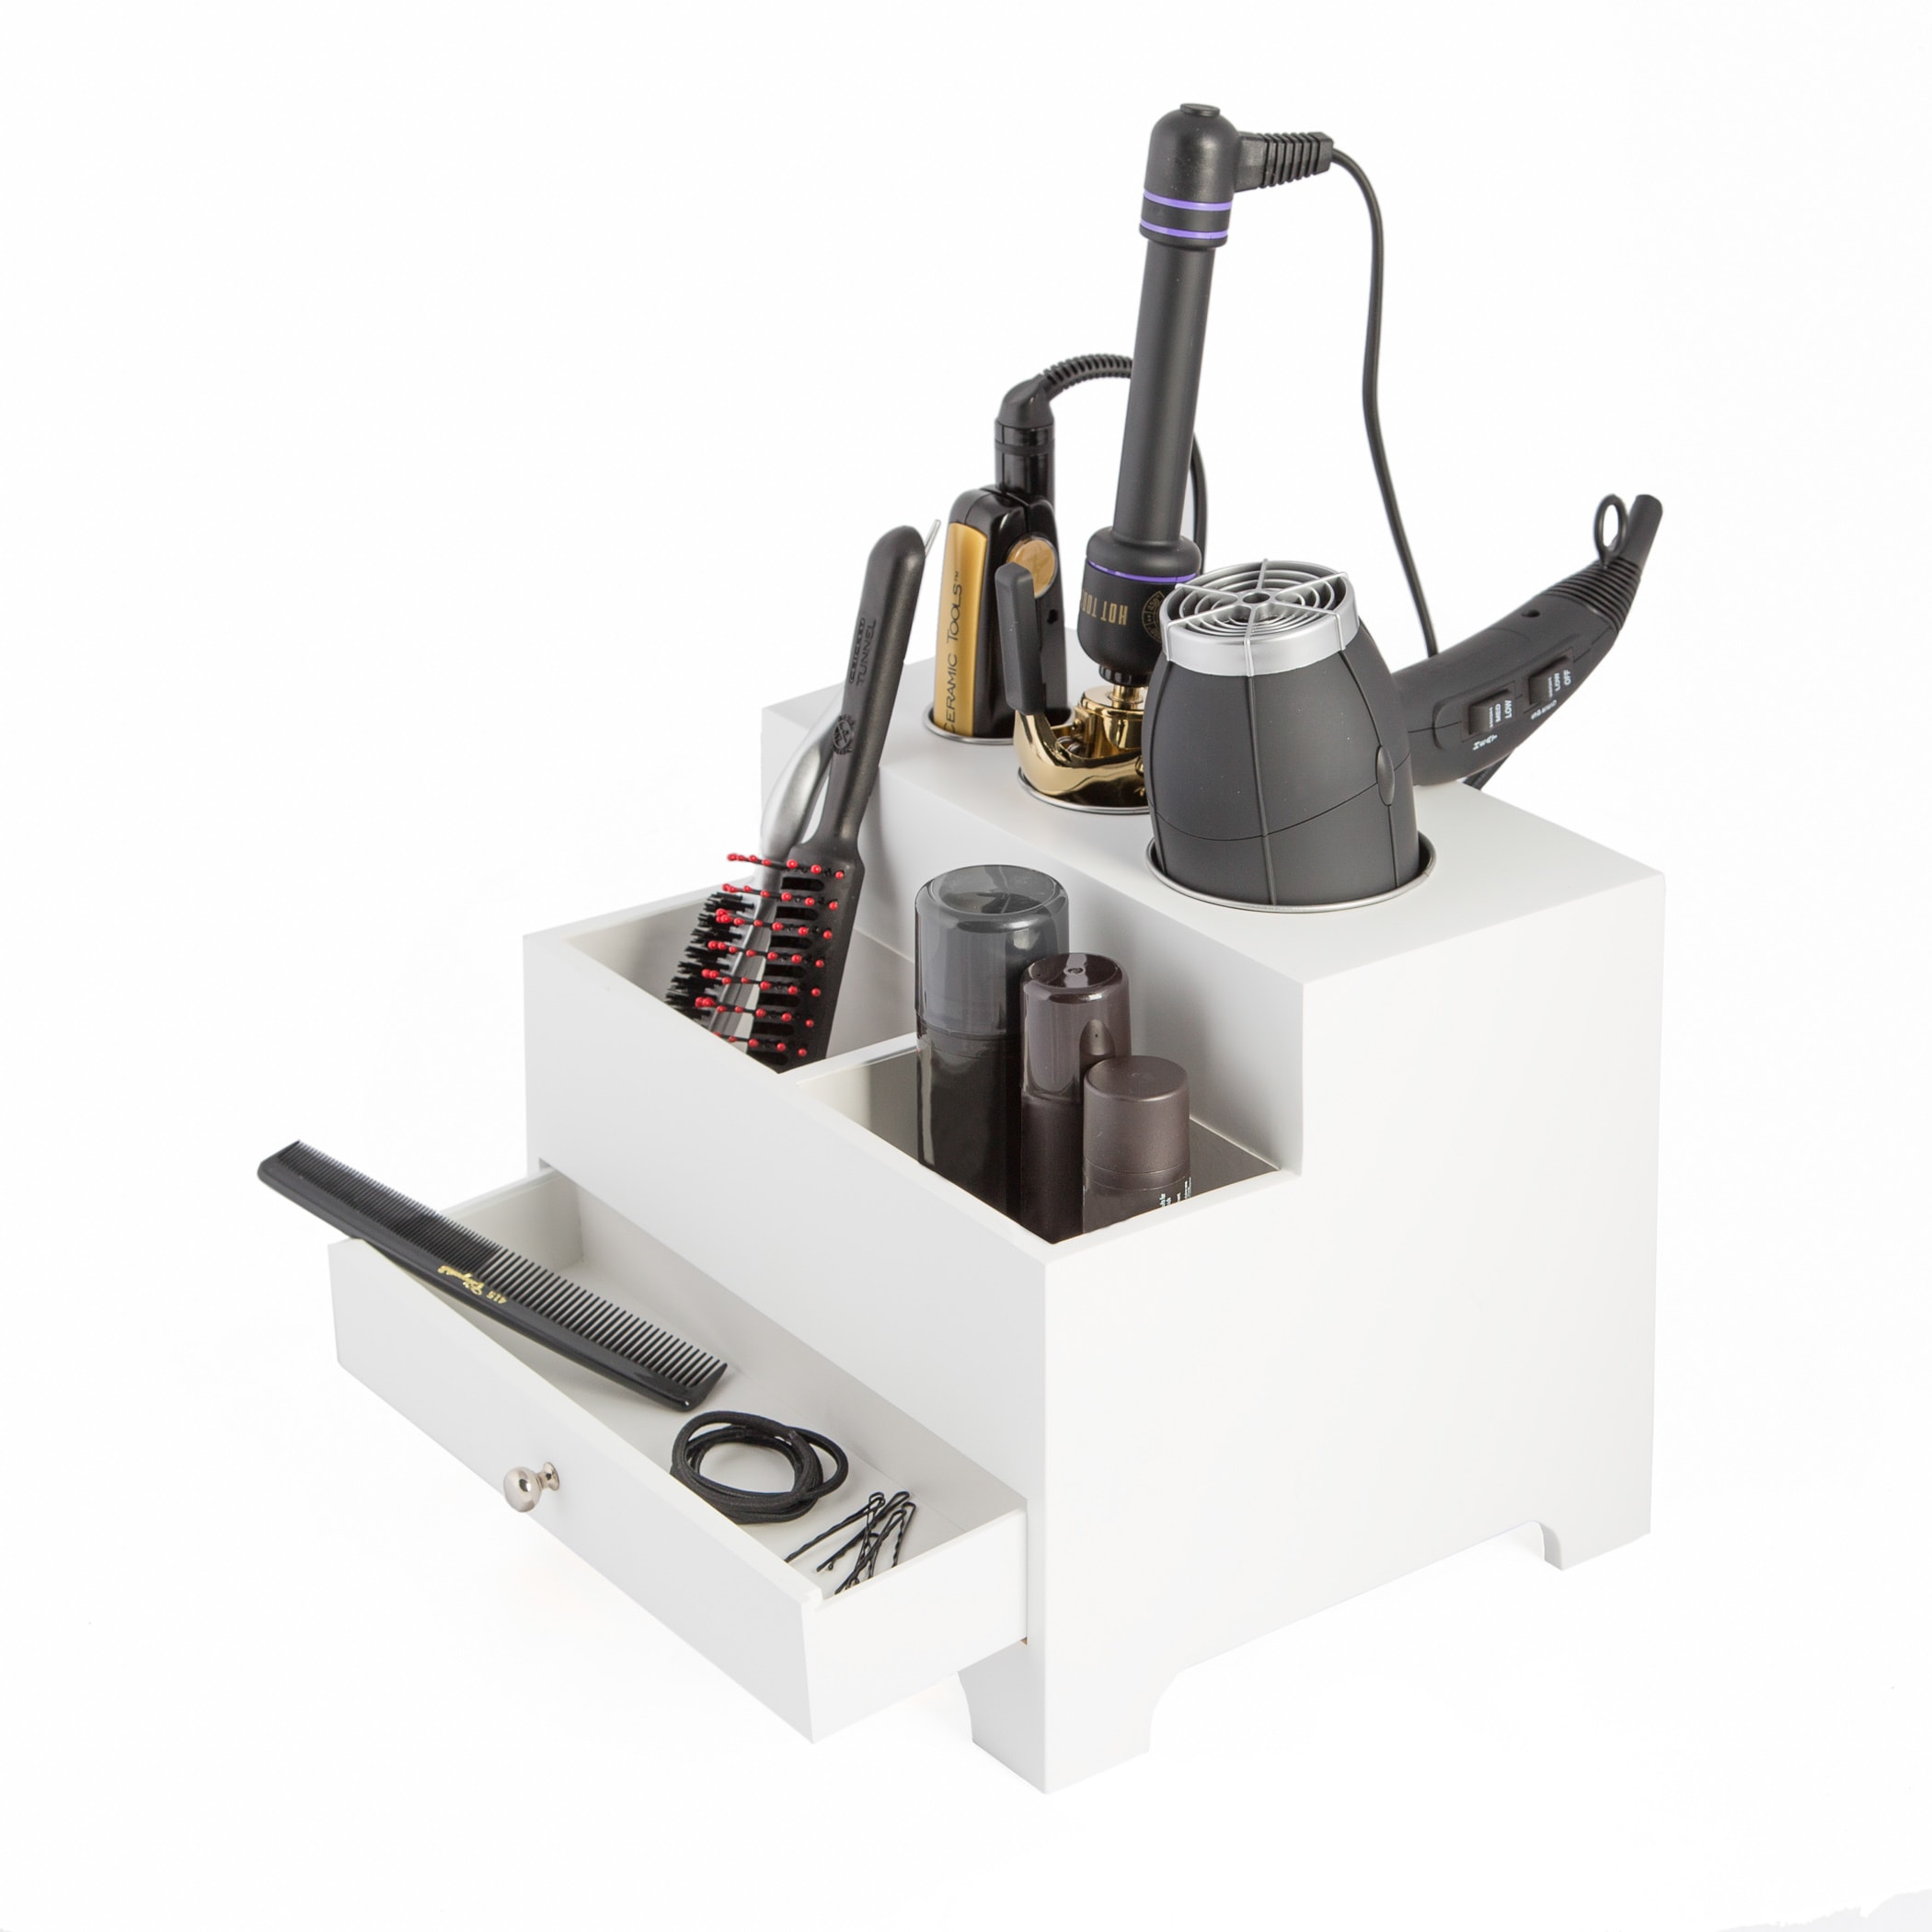 Richards White 3-compartment Hair Dryer Organizer with Po...